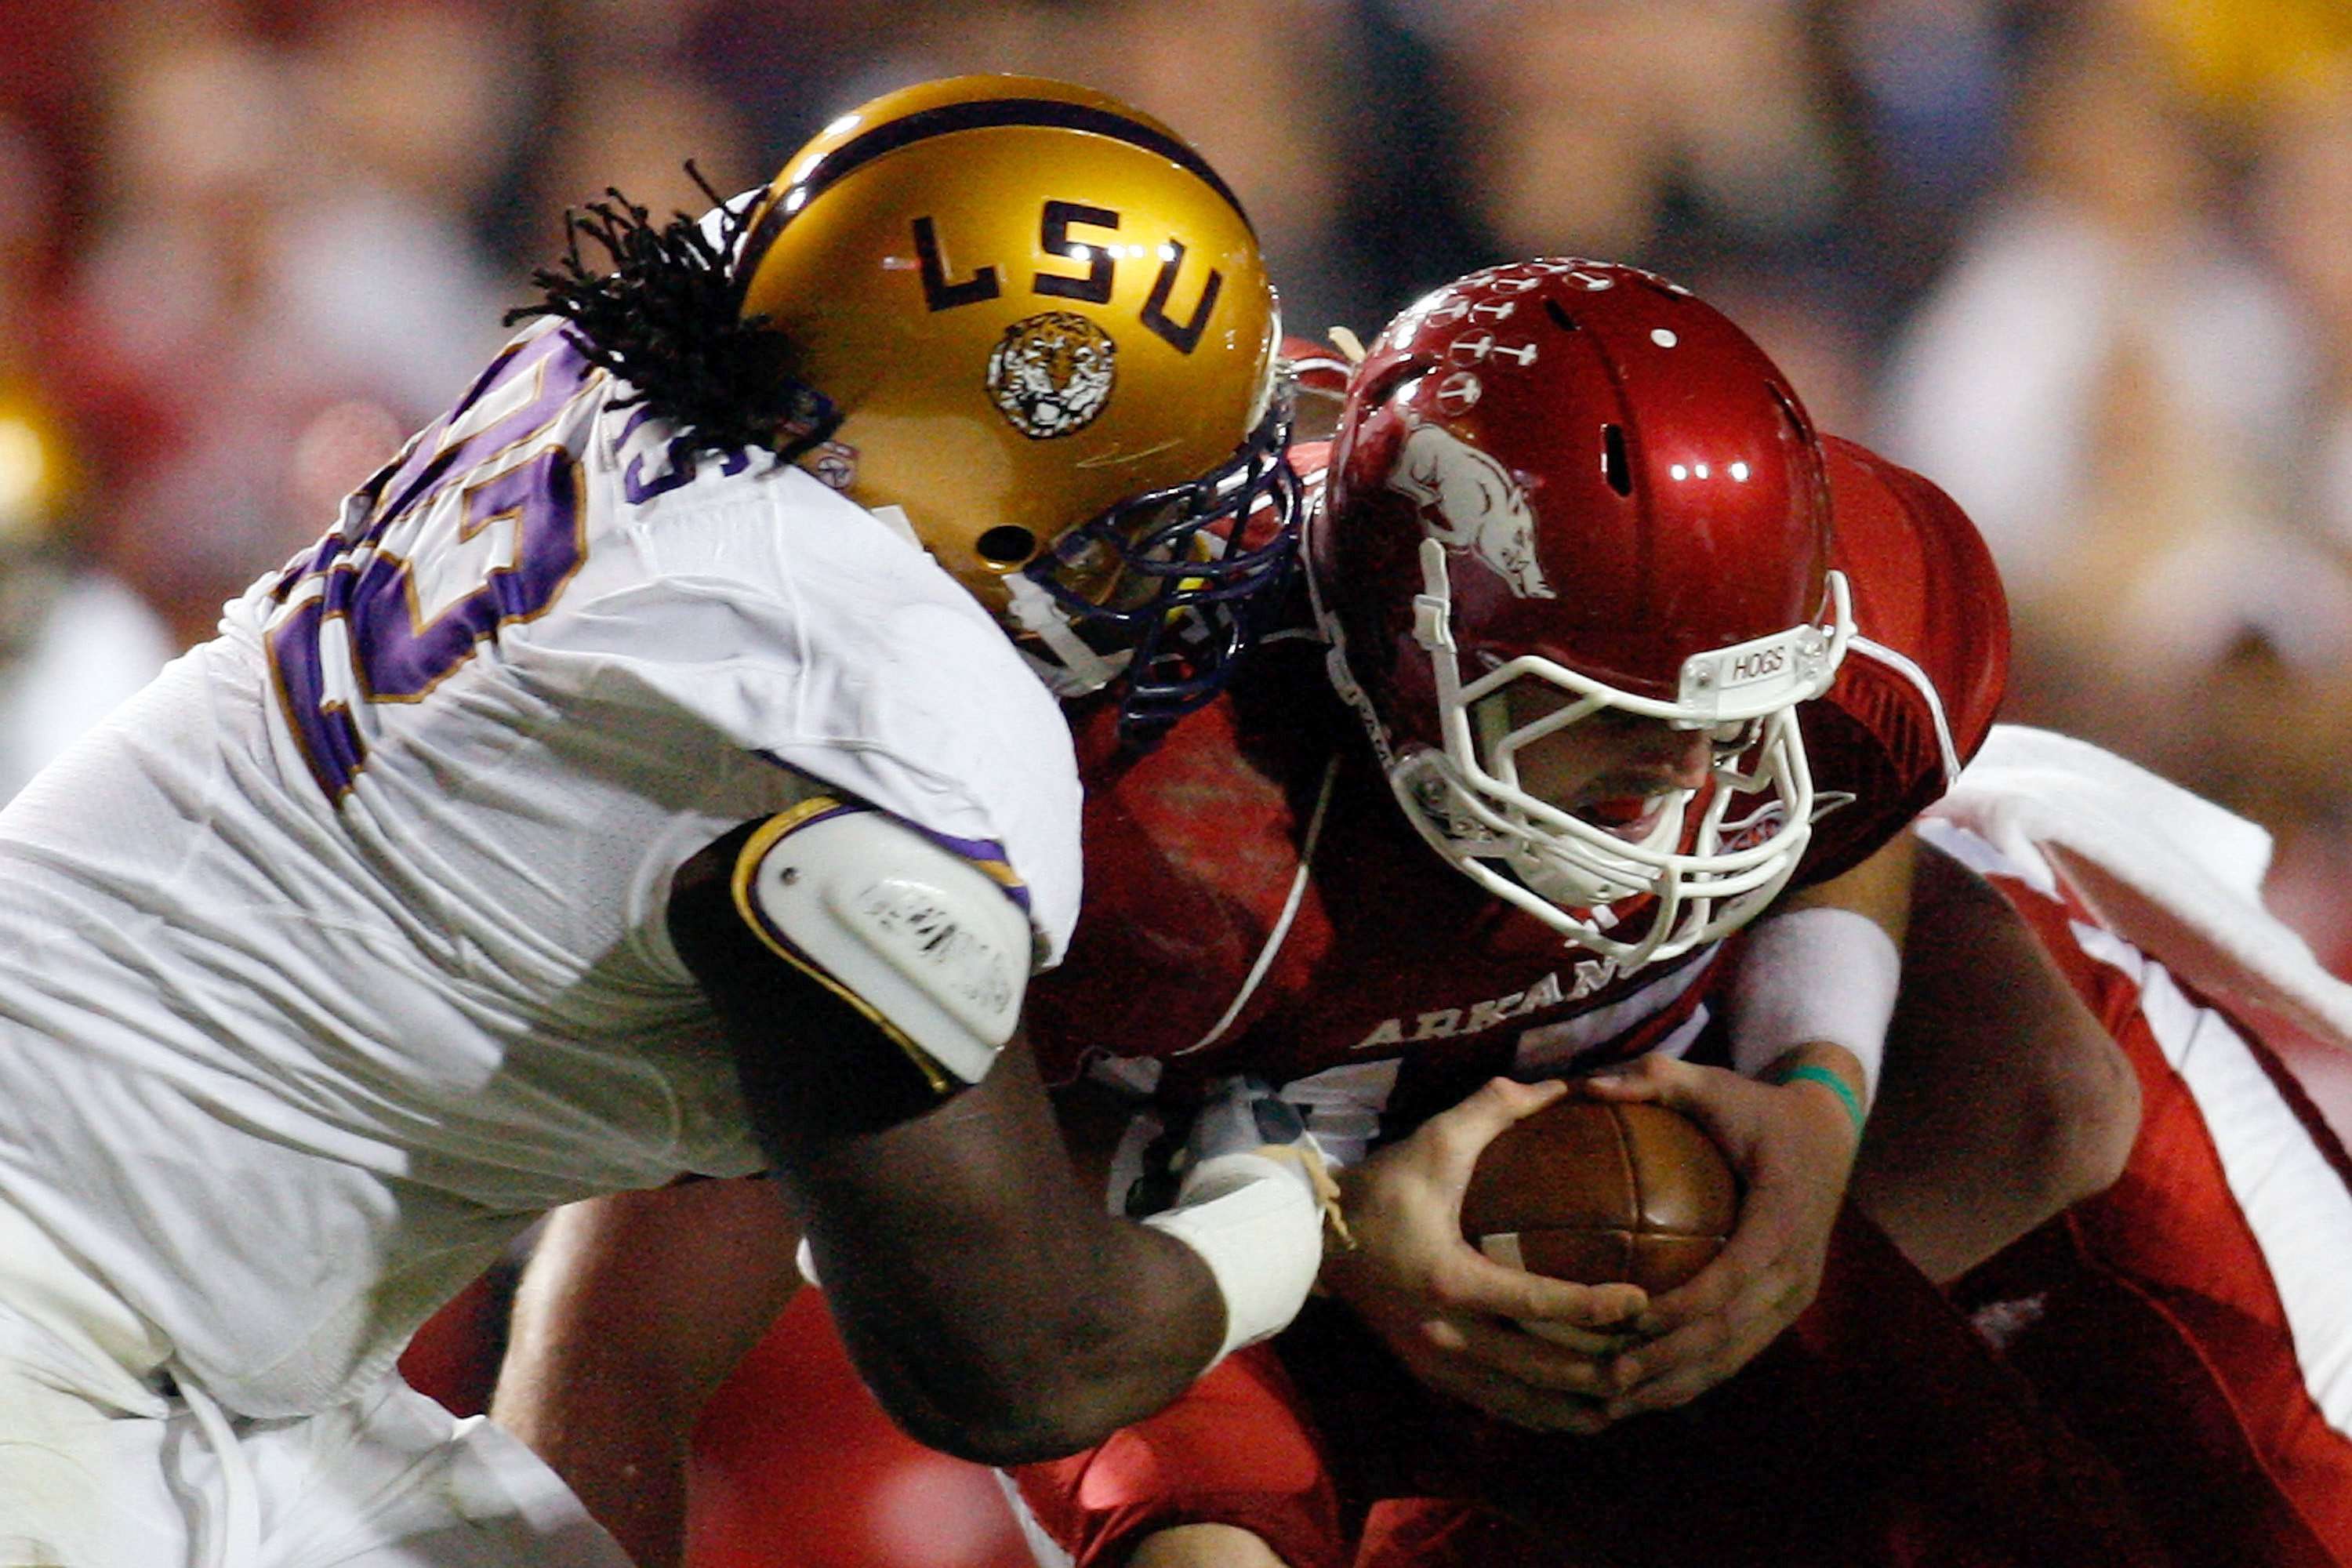 BATON ROUGE, LA - NOVEMBER 28:  Quarterback Ryan Mallett #15 of the Arkansa Razorbacks is sacked by Drake Nevis #92 of the Louisiana State University Tigers at Tiger Stadium on November 28, 2009 in Baton Rouge, Louisiana.  (Photo by Chris Graythen/Getty I